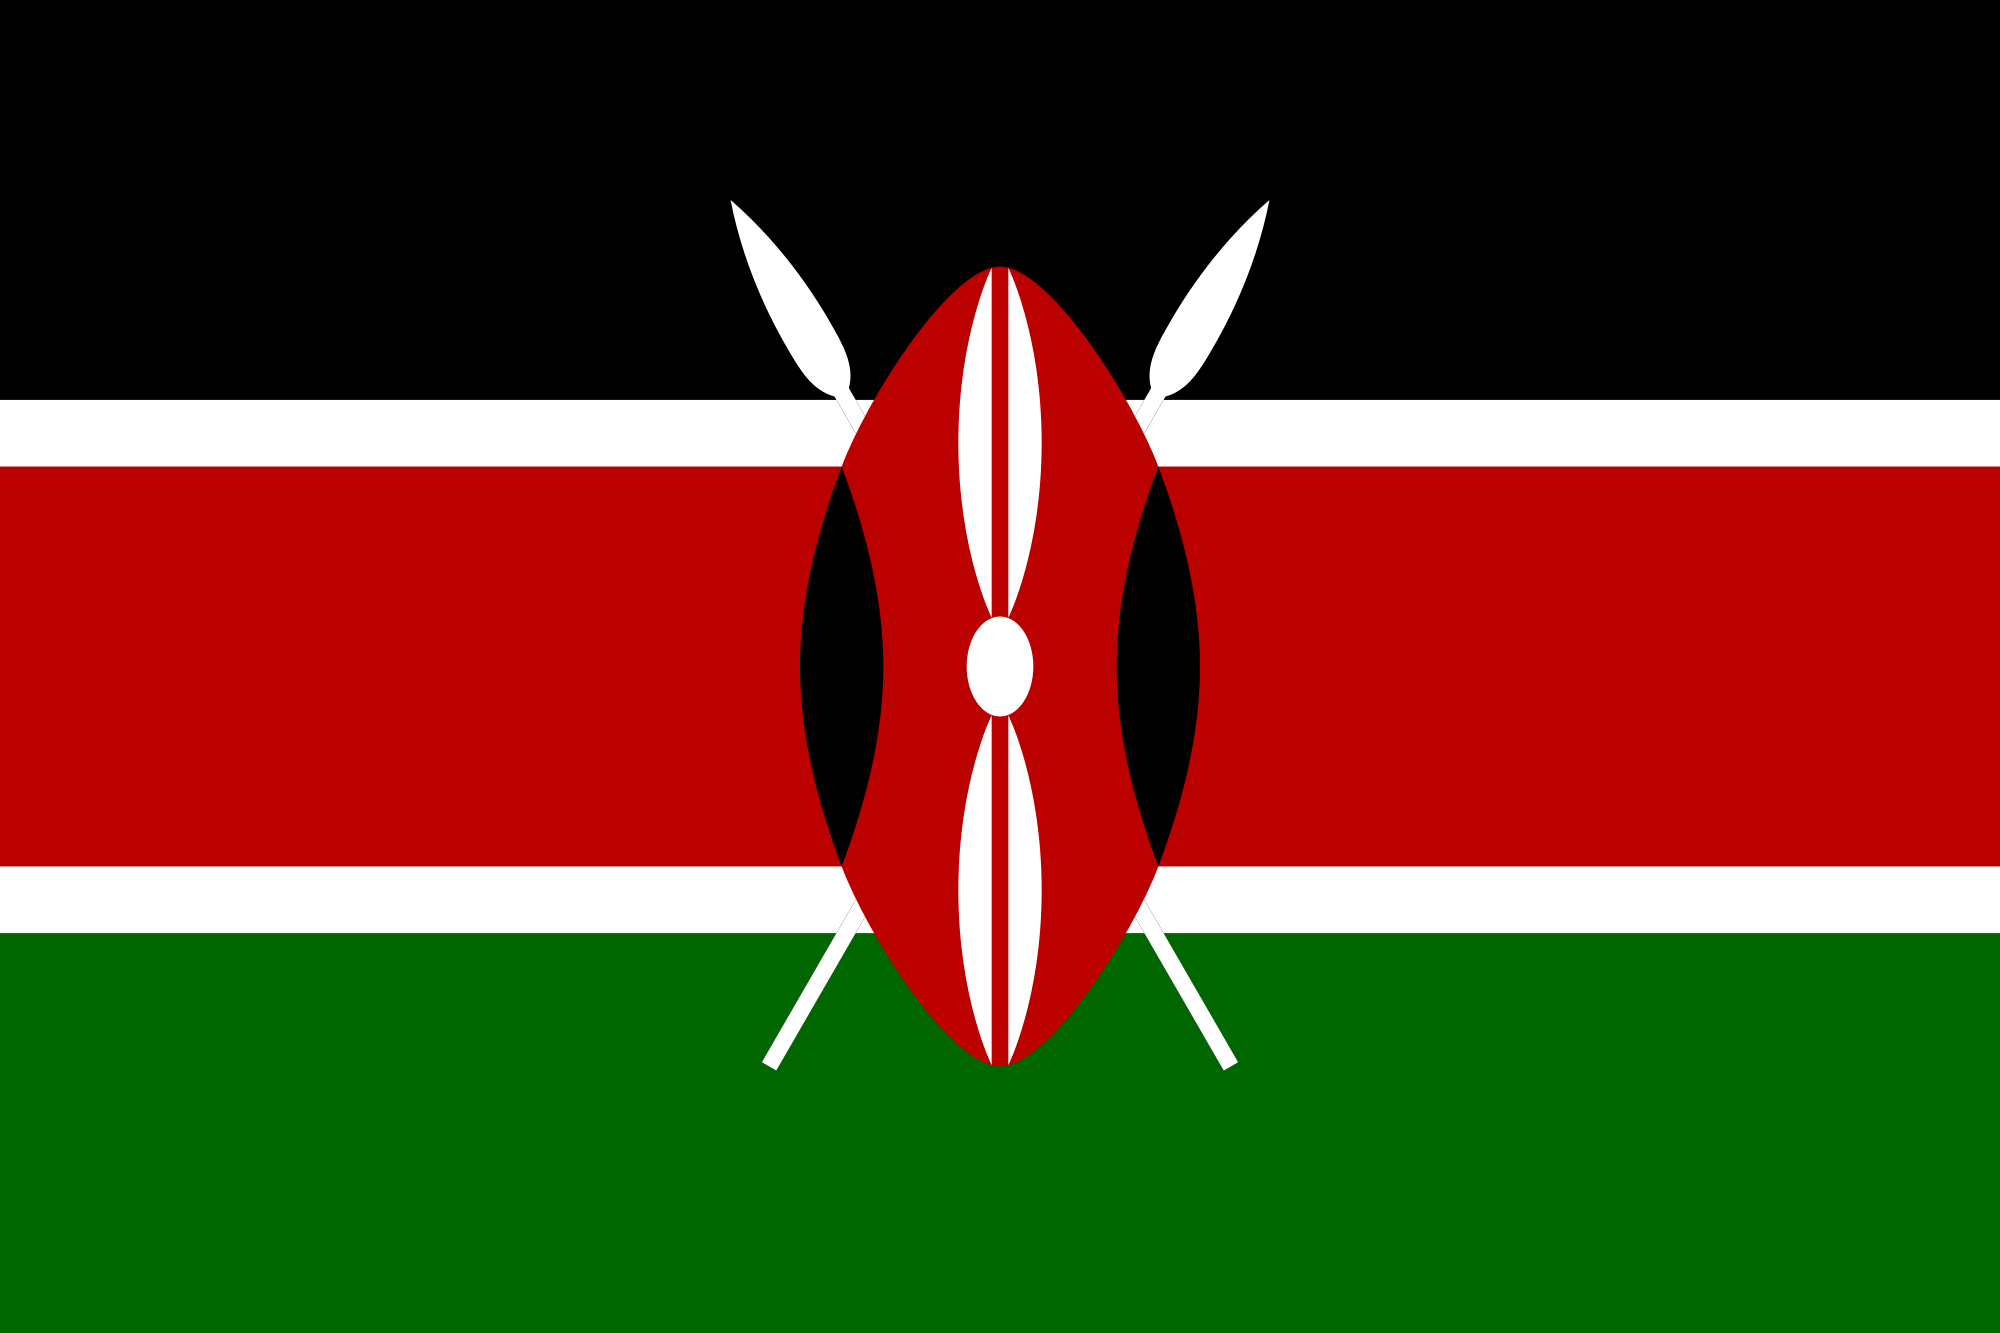 Kenya flag symbolism of colors flag etiquette design and history and green bottom colors running from left to right separated by white stripes with a symmetrical shield and white spears superimposed in the middle biocorpaavc Choice Image